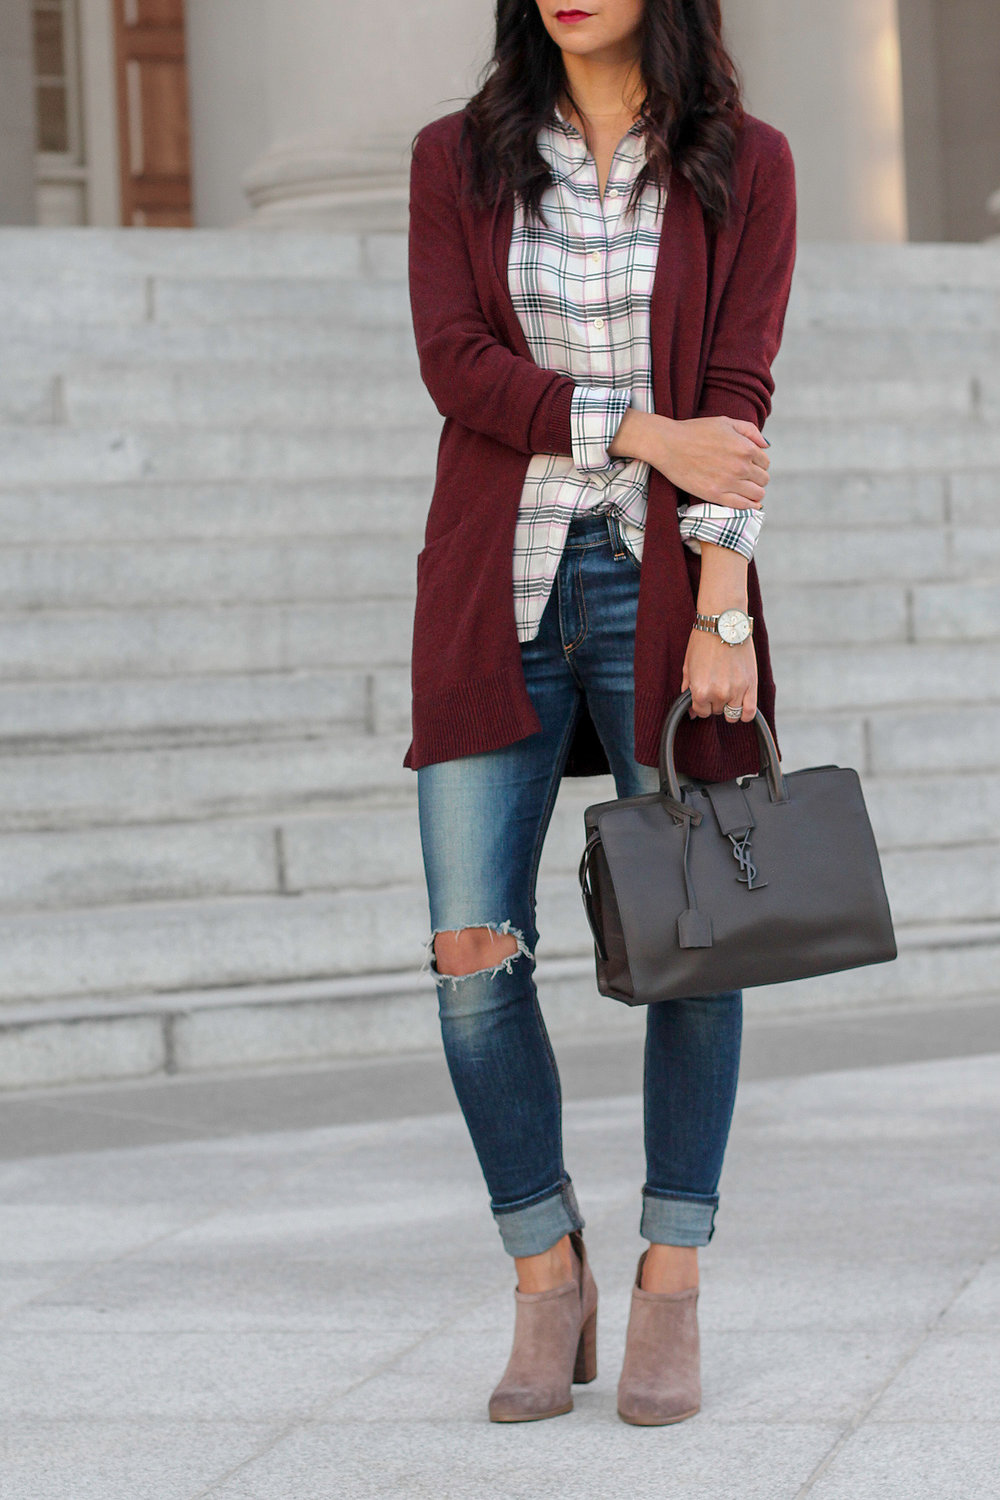 Styling a Cardigan for Fall